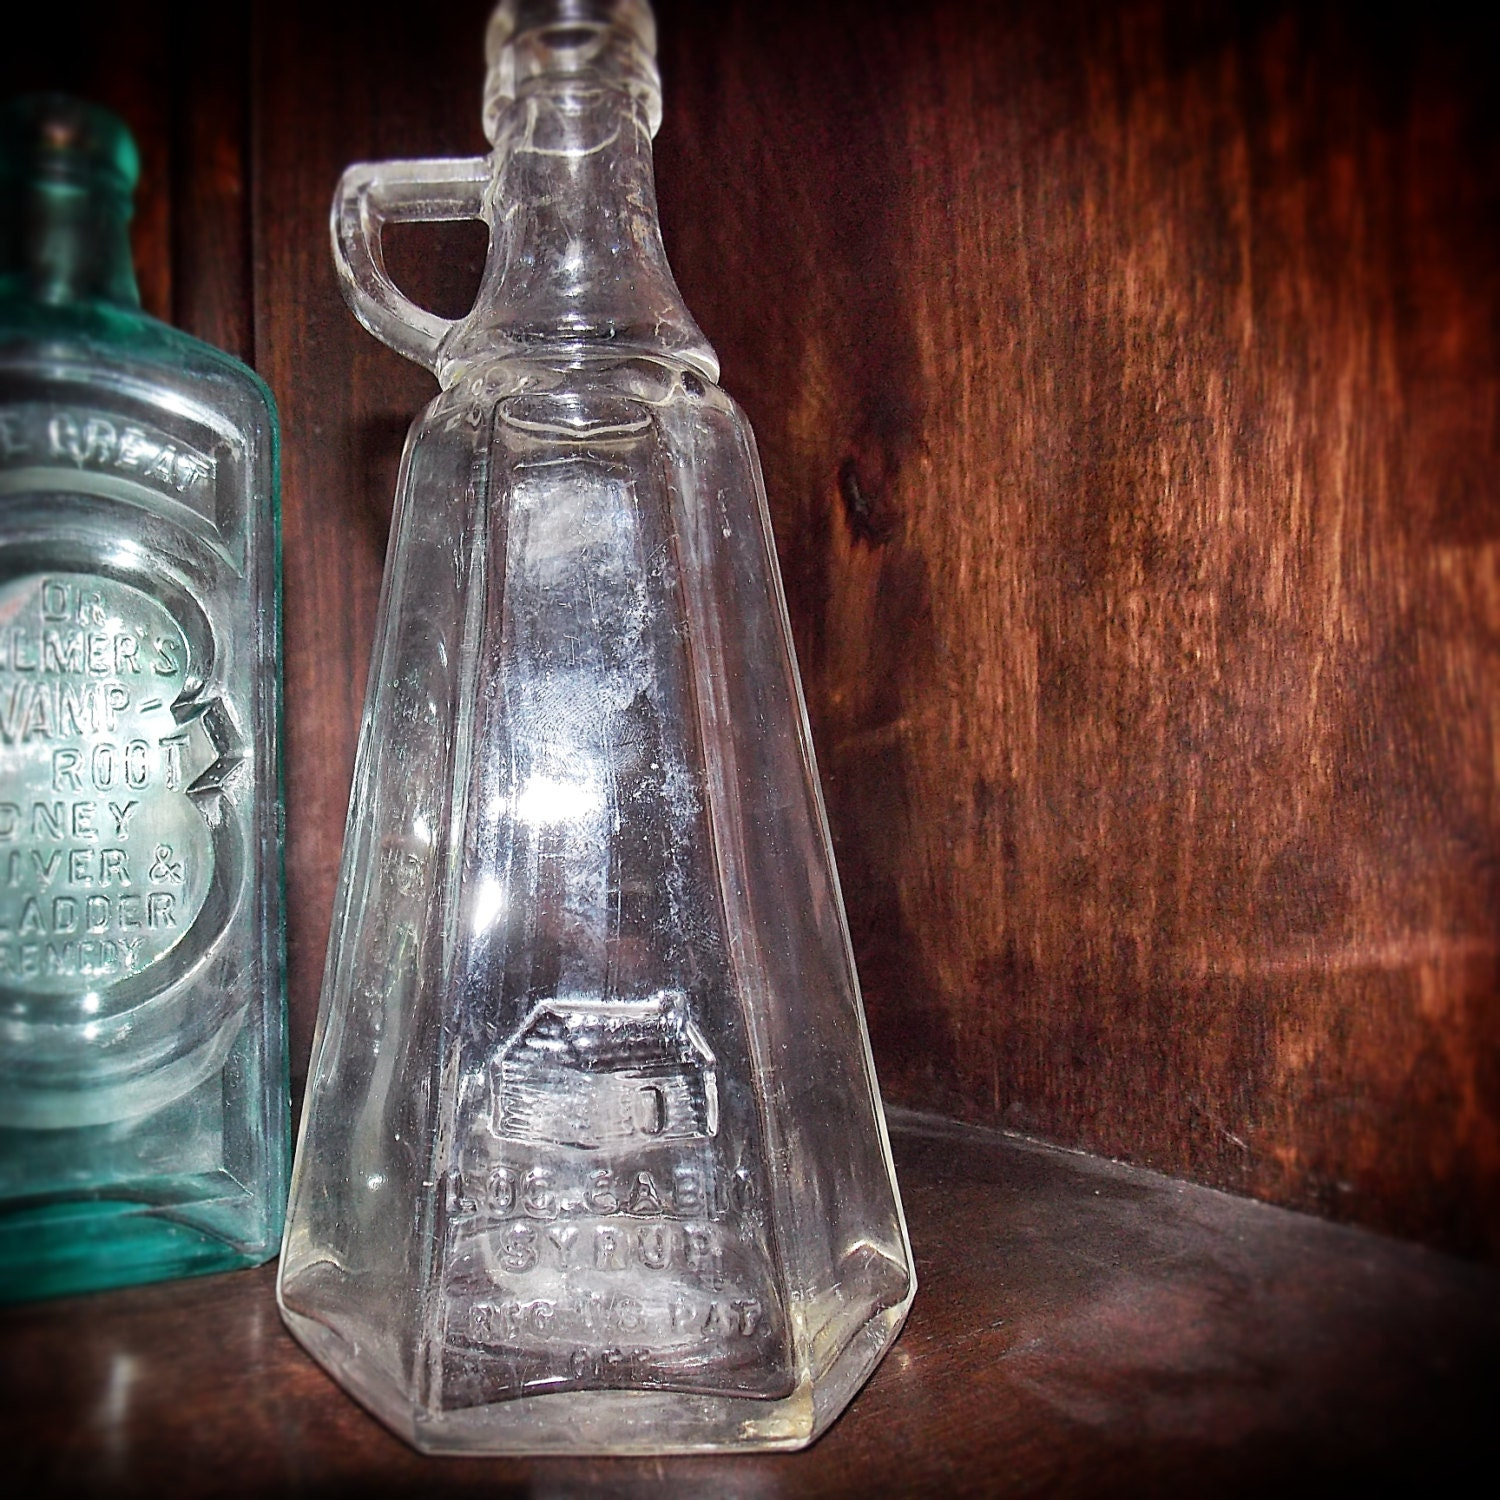 Log Cabin Syrup Glass Bottles : Etsy your place to buy and sell all things handmade